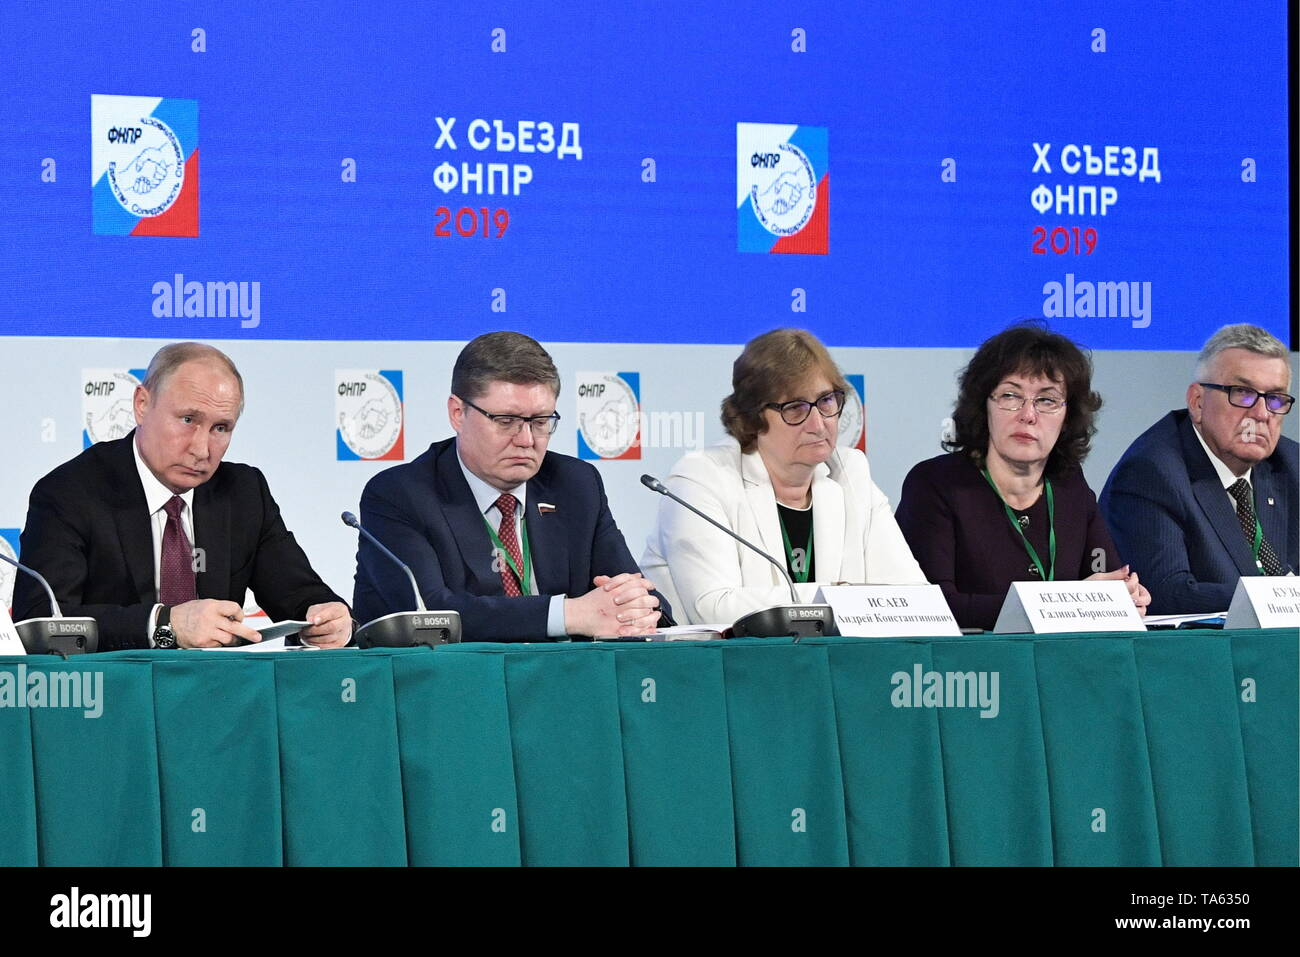 Moscow, Russia. 22nd May, 2019. MOSCOW, RUSSIA - MAY 22, 2019: Russia's President Vladimir Putin and State Duma member Andrei Isayev (L-R) attend the 10th Congress of the Russian Federation of Independent Trade Unions at the Izmailovo Concert Hall. Alexei Nikolsky/Russian Presidential Press and Information Office/TASS Credit: ITAR-TASS News Agency/Alamy Live News - Stock Image